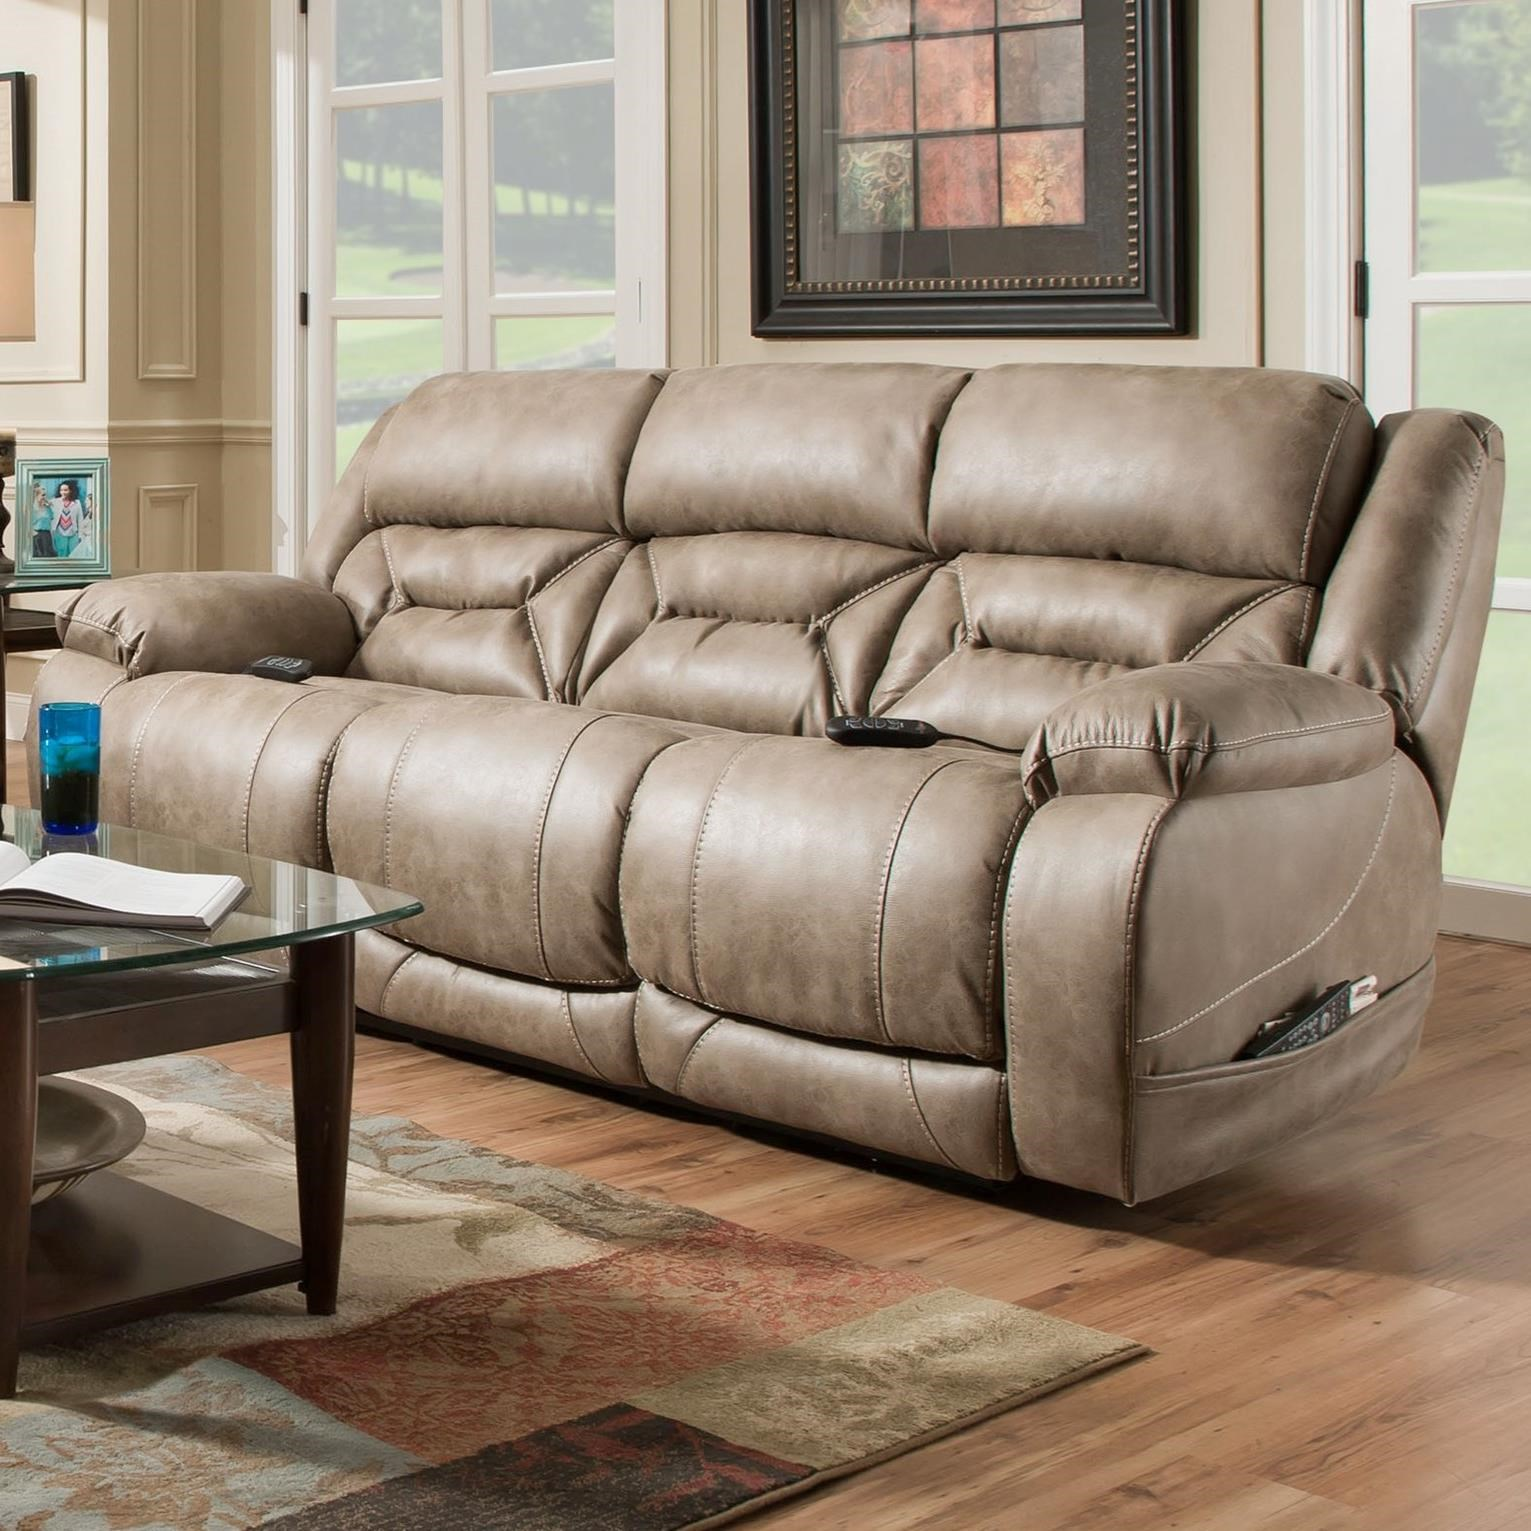 HomeStretch Enterprise Casual Power Reclining Sofa with